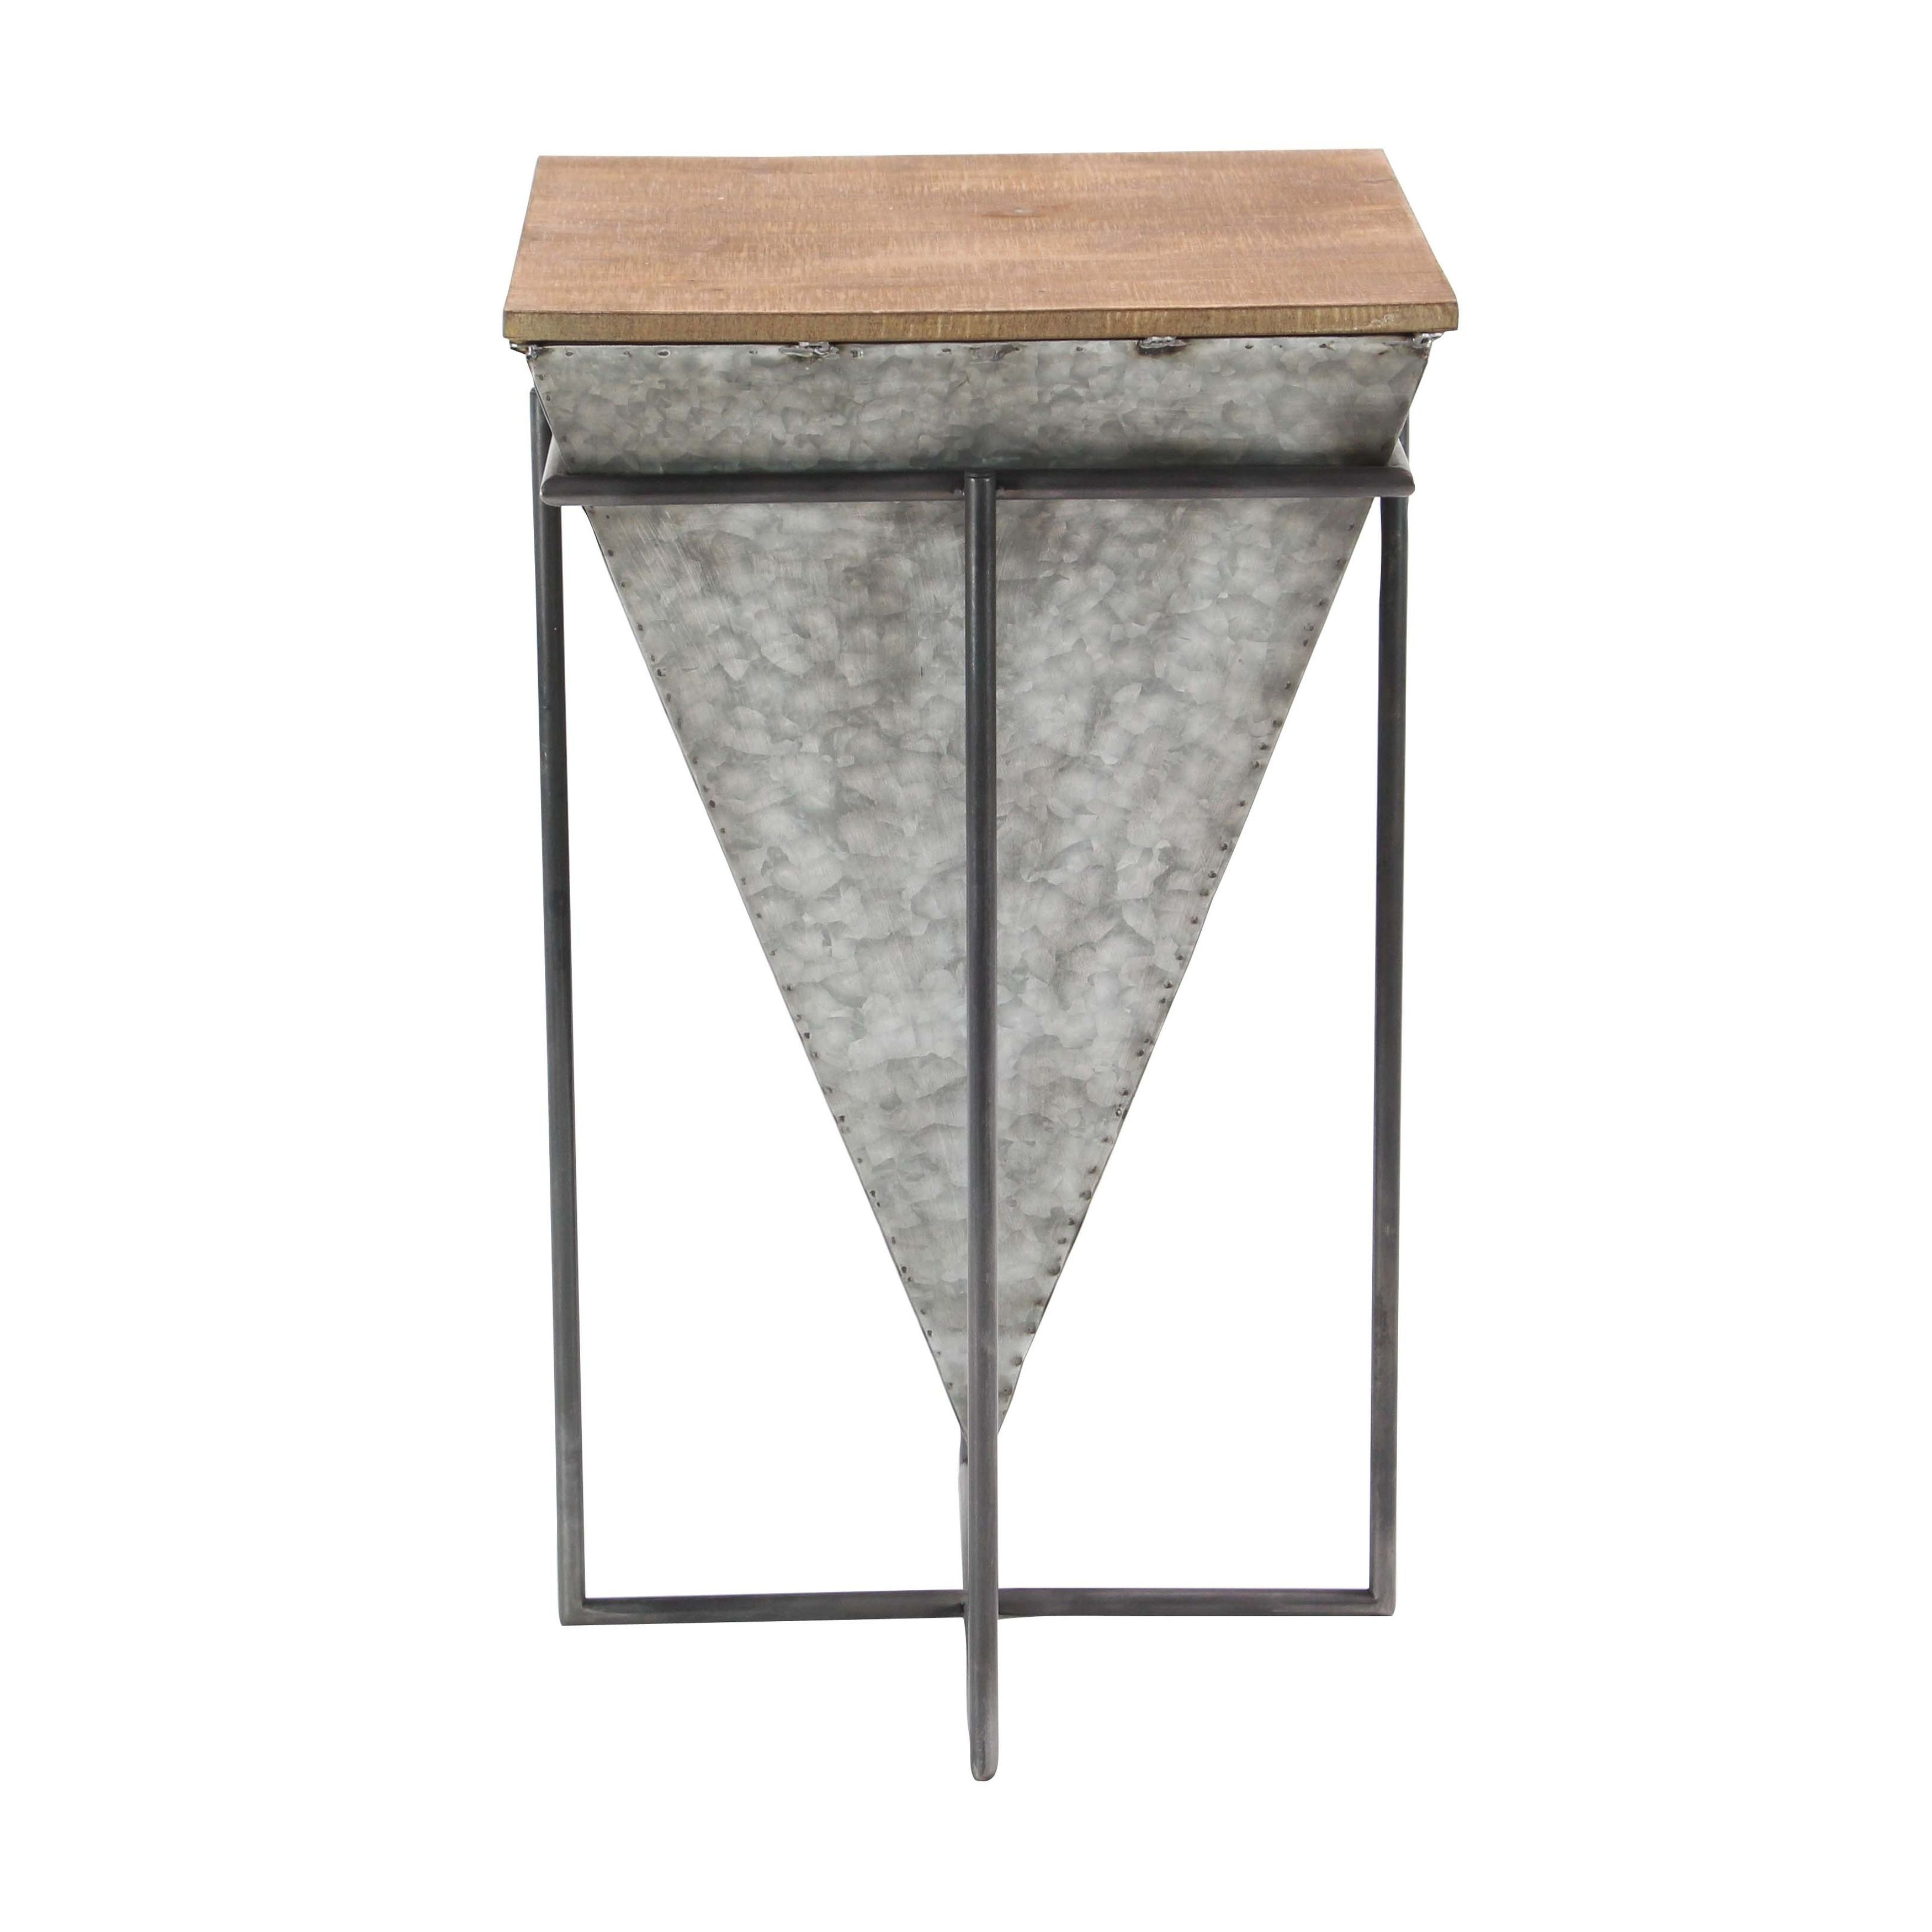 pyramid end table design ideas modern inverted iron and wood accent mirrored free small kitchen lamp home wall decor black dining room furniture piece living set espresso with